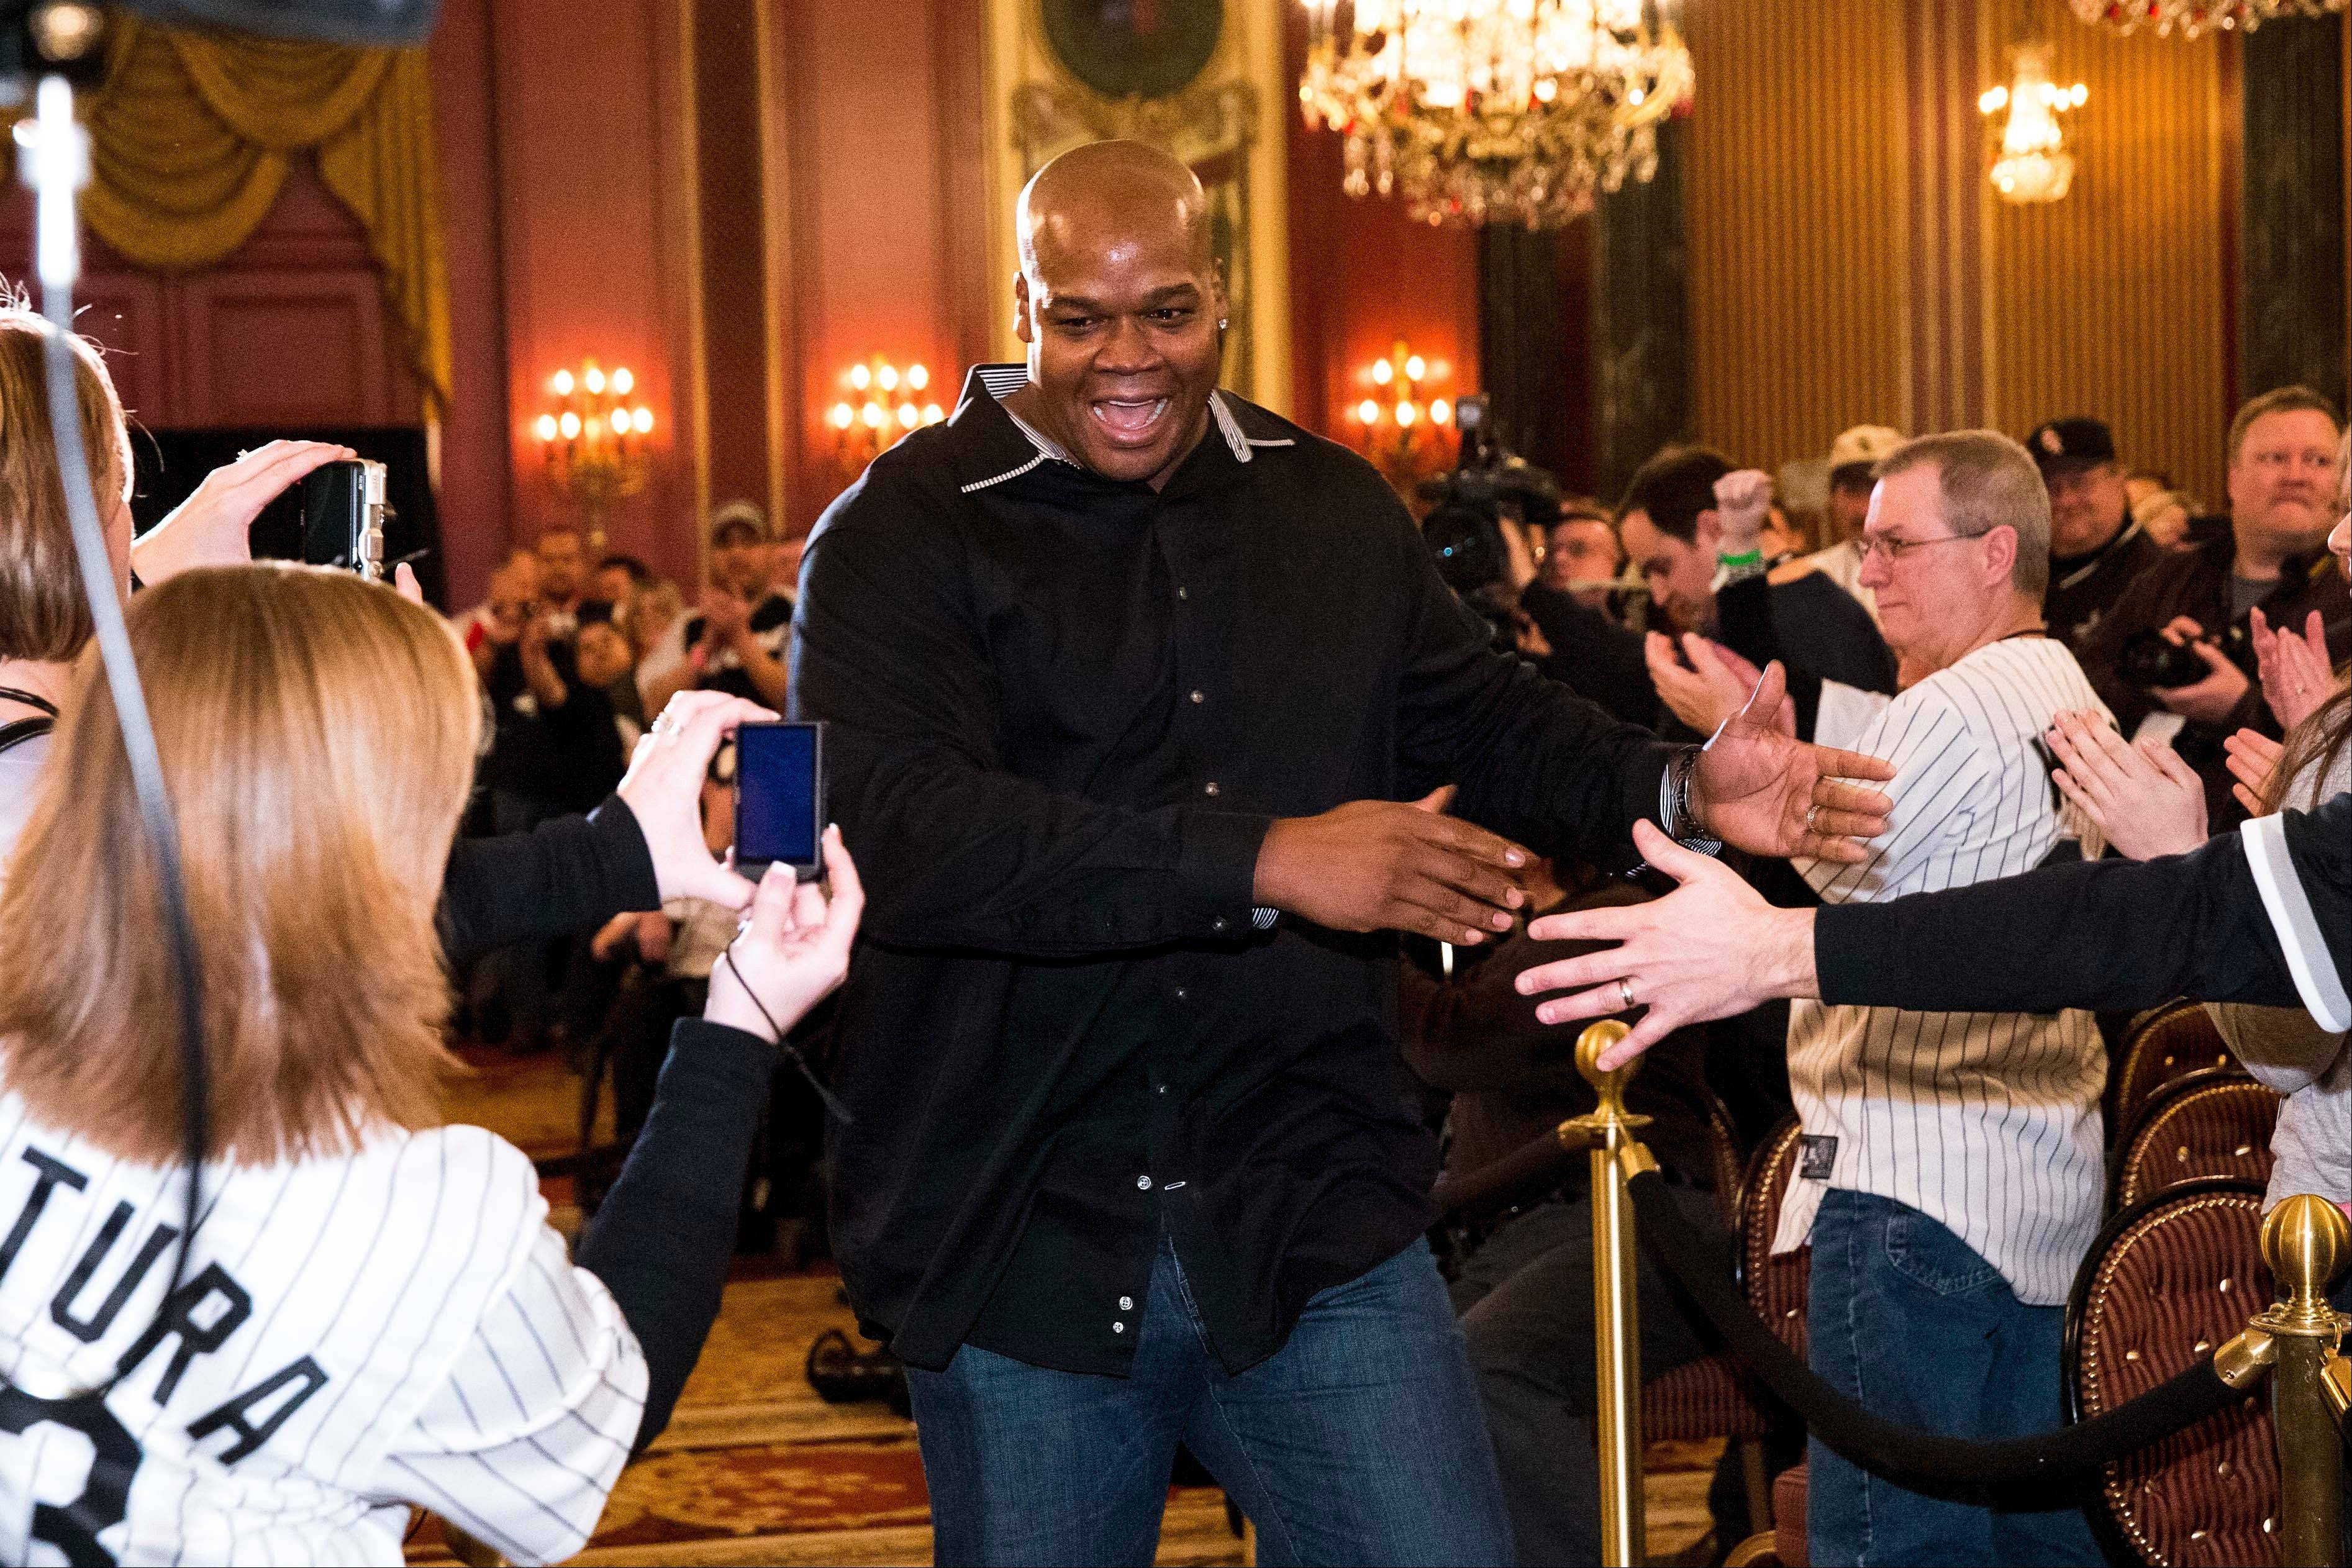 Former Chicago White Sox slugger Frank Thomas greets fans during the opening ceremony of the baseball team's SoxFest annual fan convention Friday in Chicago.